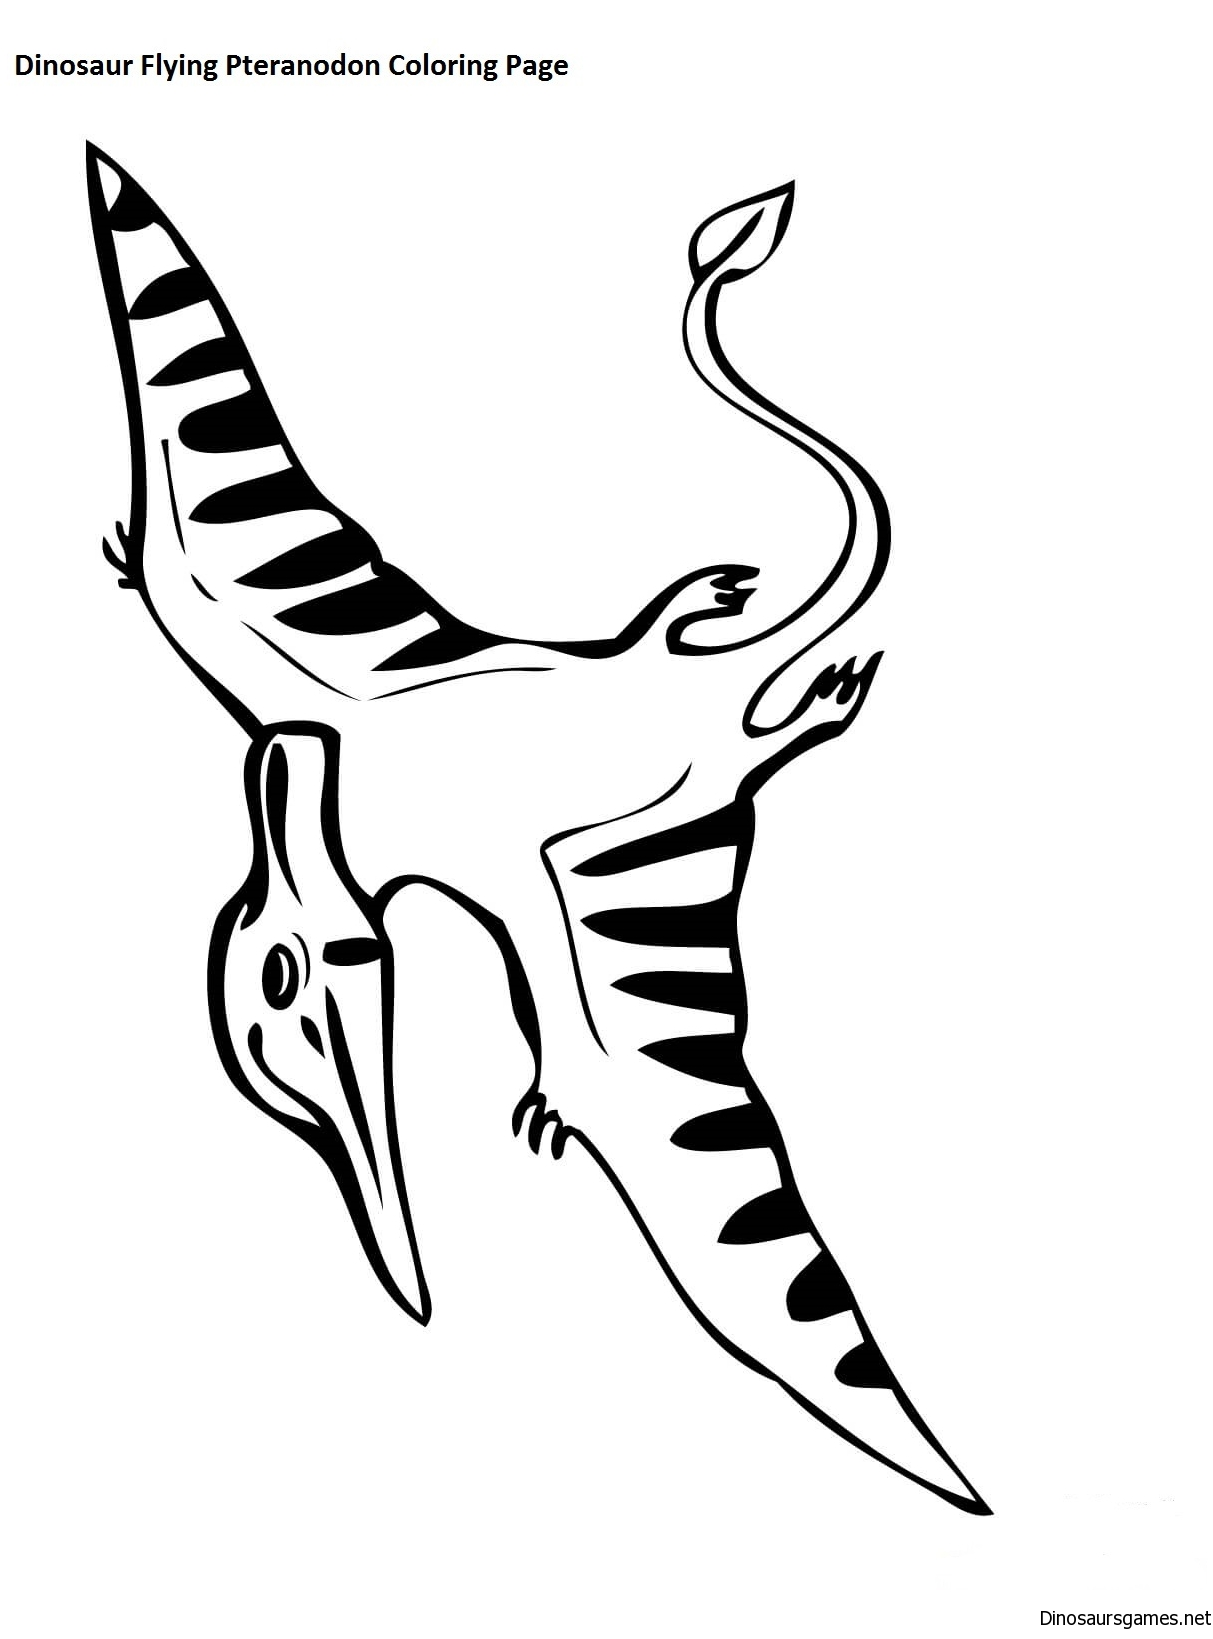 Dinosaur Flying Pteranodon Coloring Page